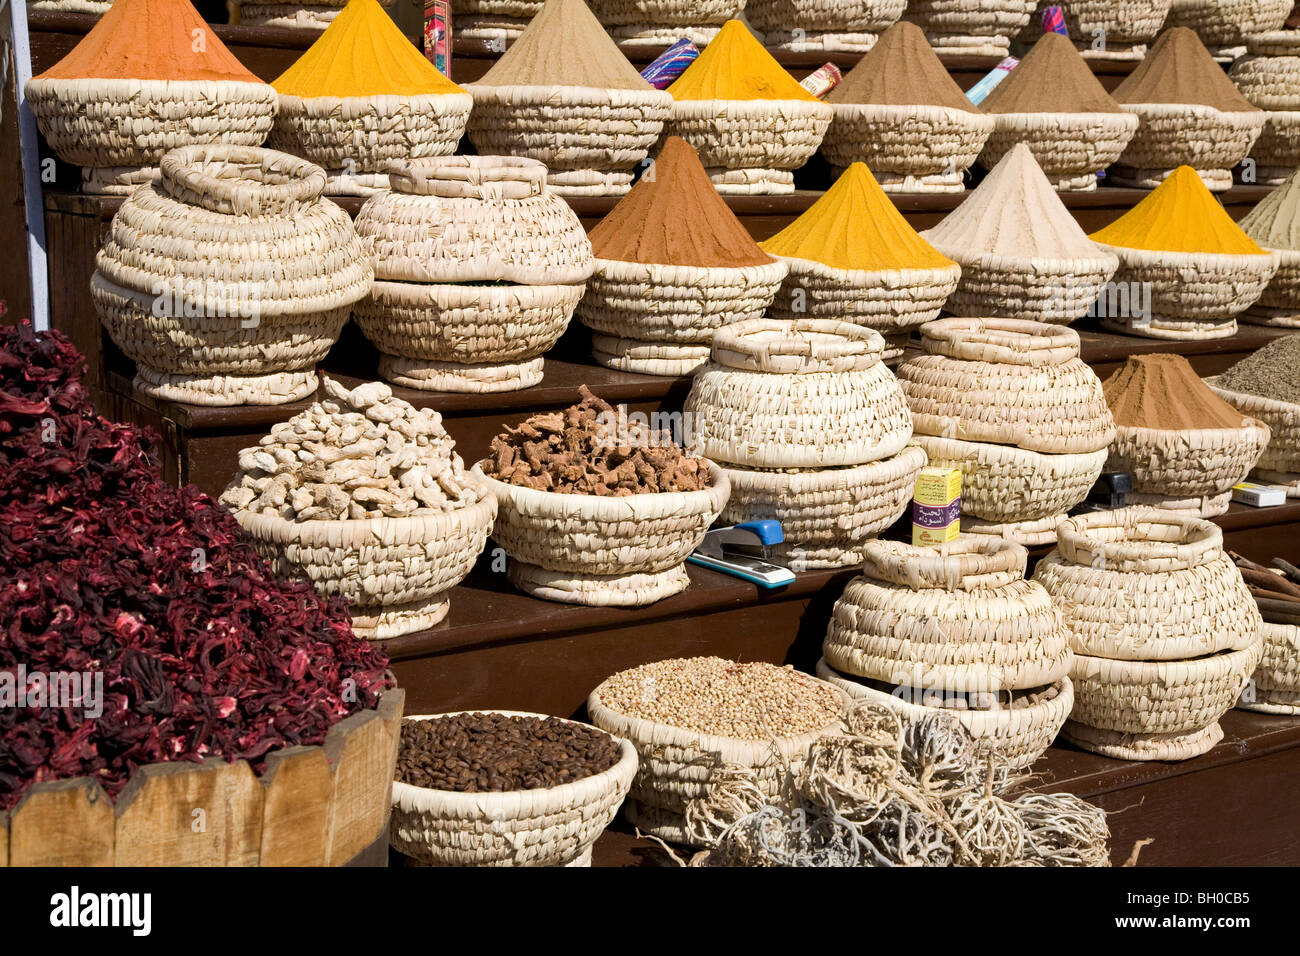 Still life. Baskets of spices on display in Sharm El Sheikh market. Egypt. Africa. - Stock Image